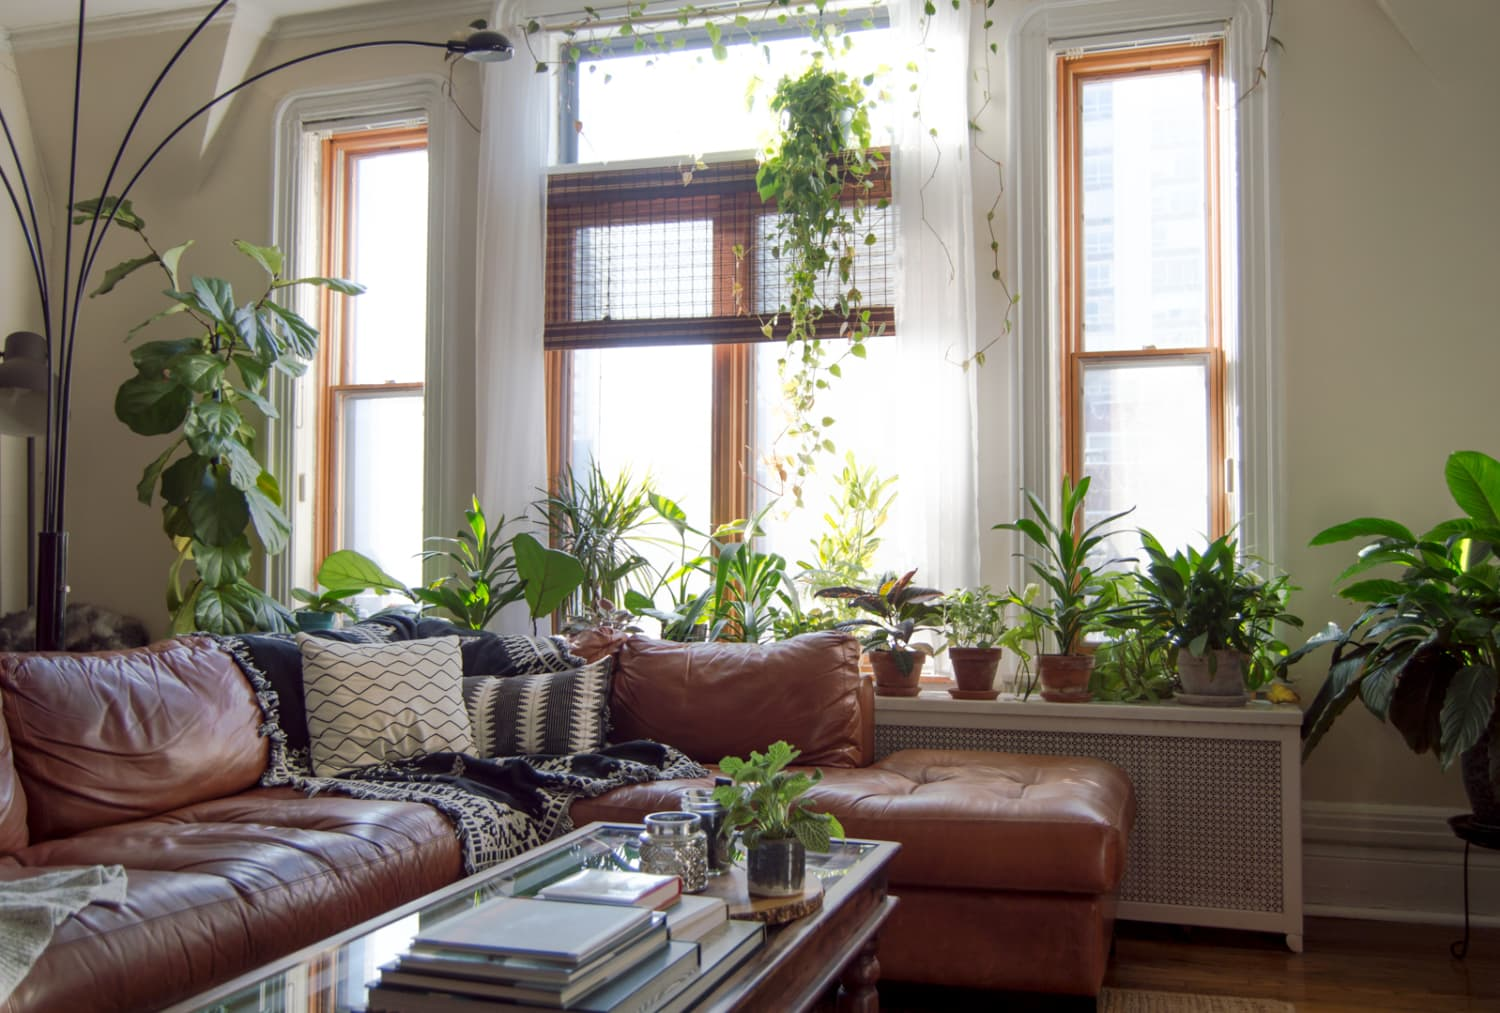 An Avid DIYer Brings the Outdoors In With Plants and Rustic Decor